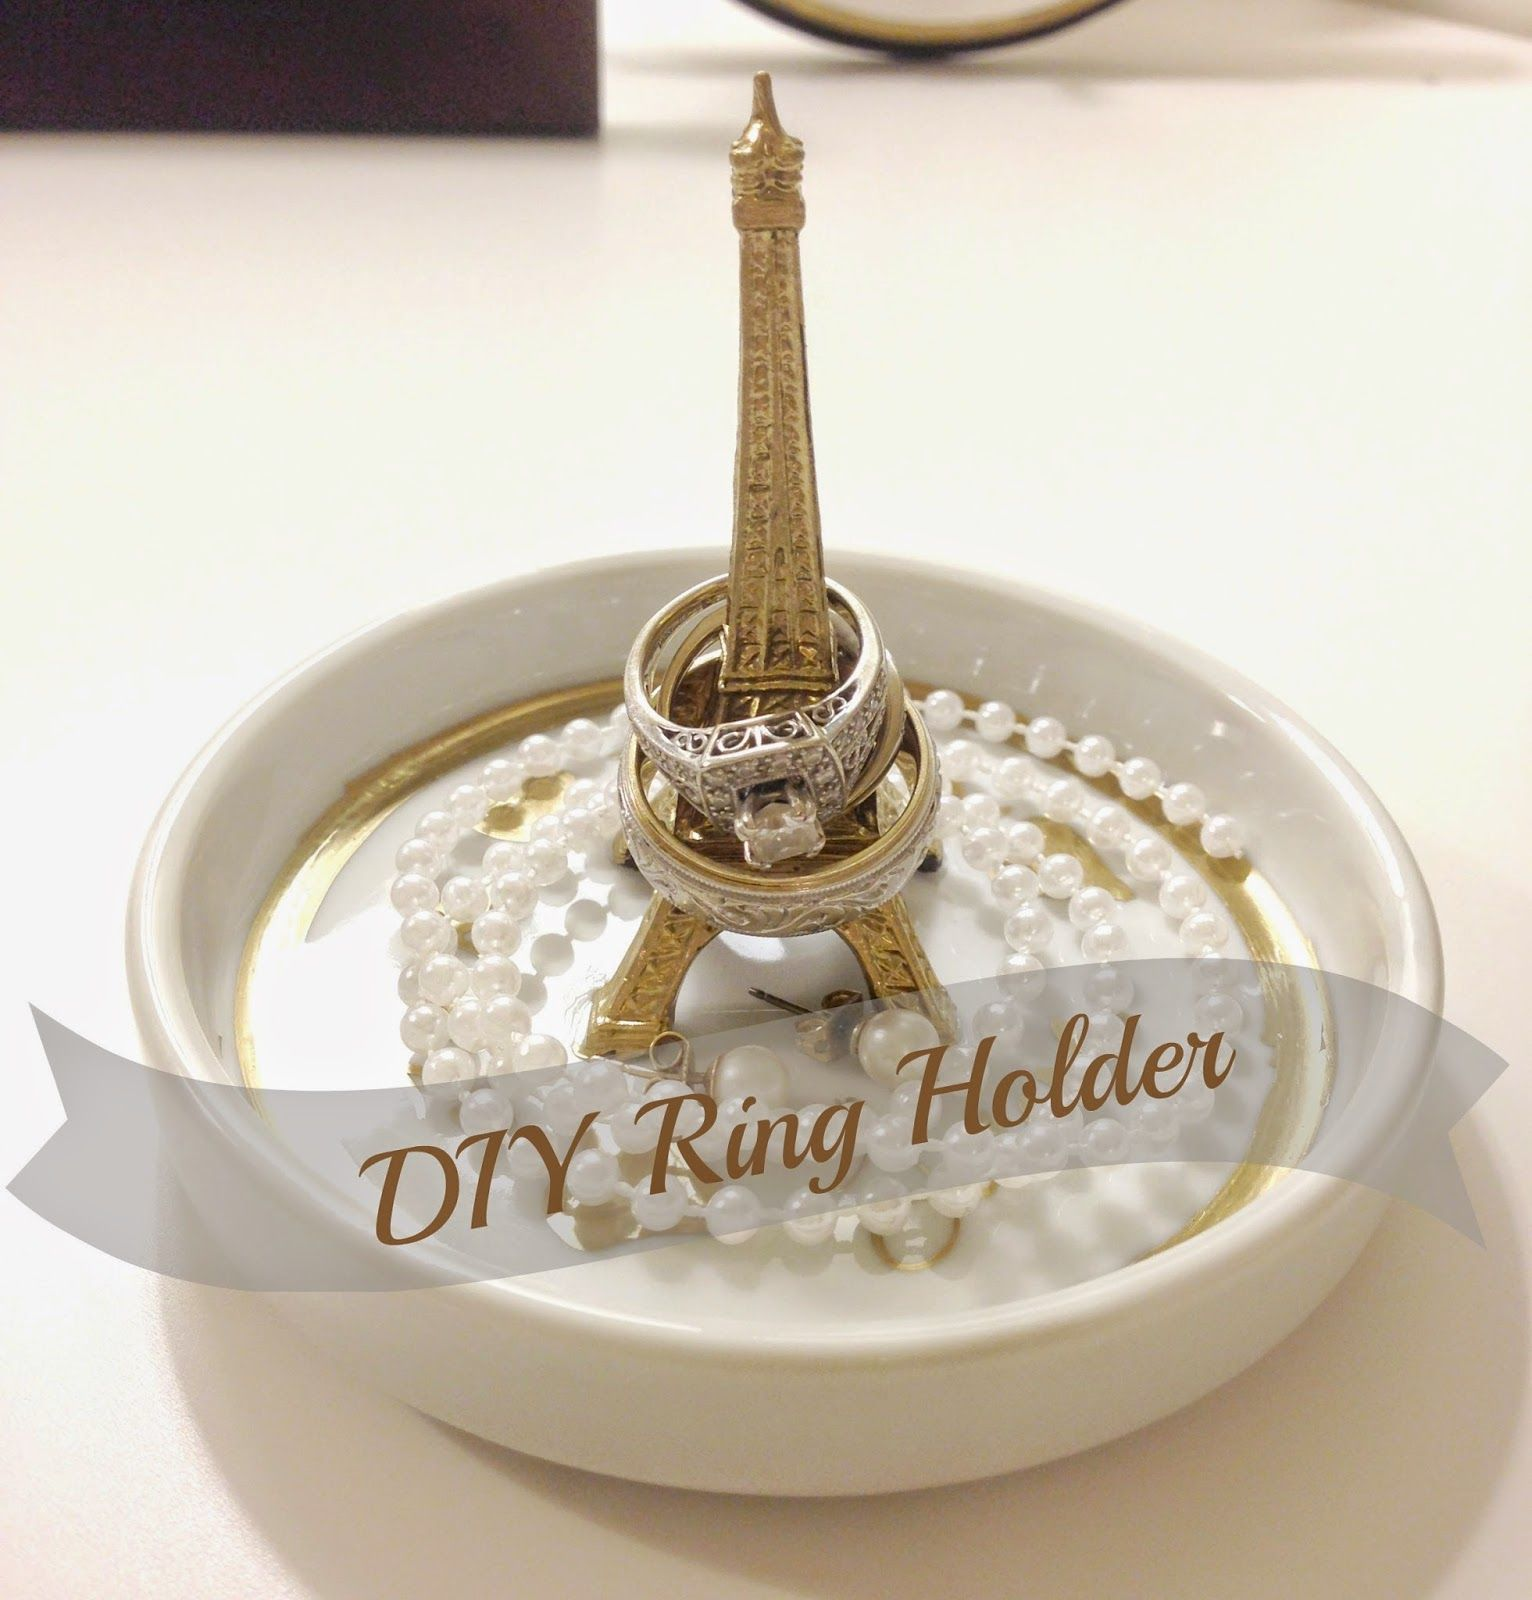 diy ring holder diy pinterest diy rings diy ring